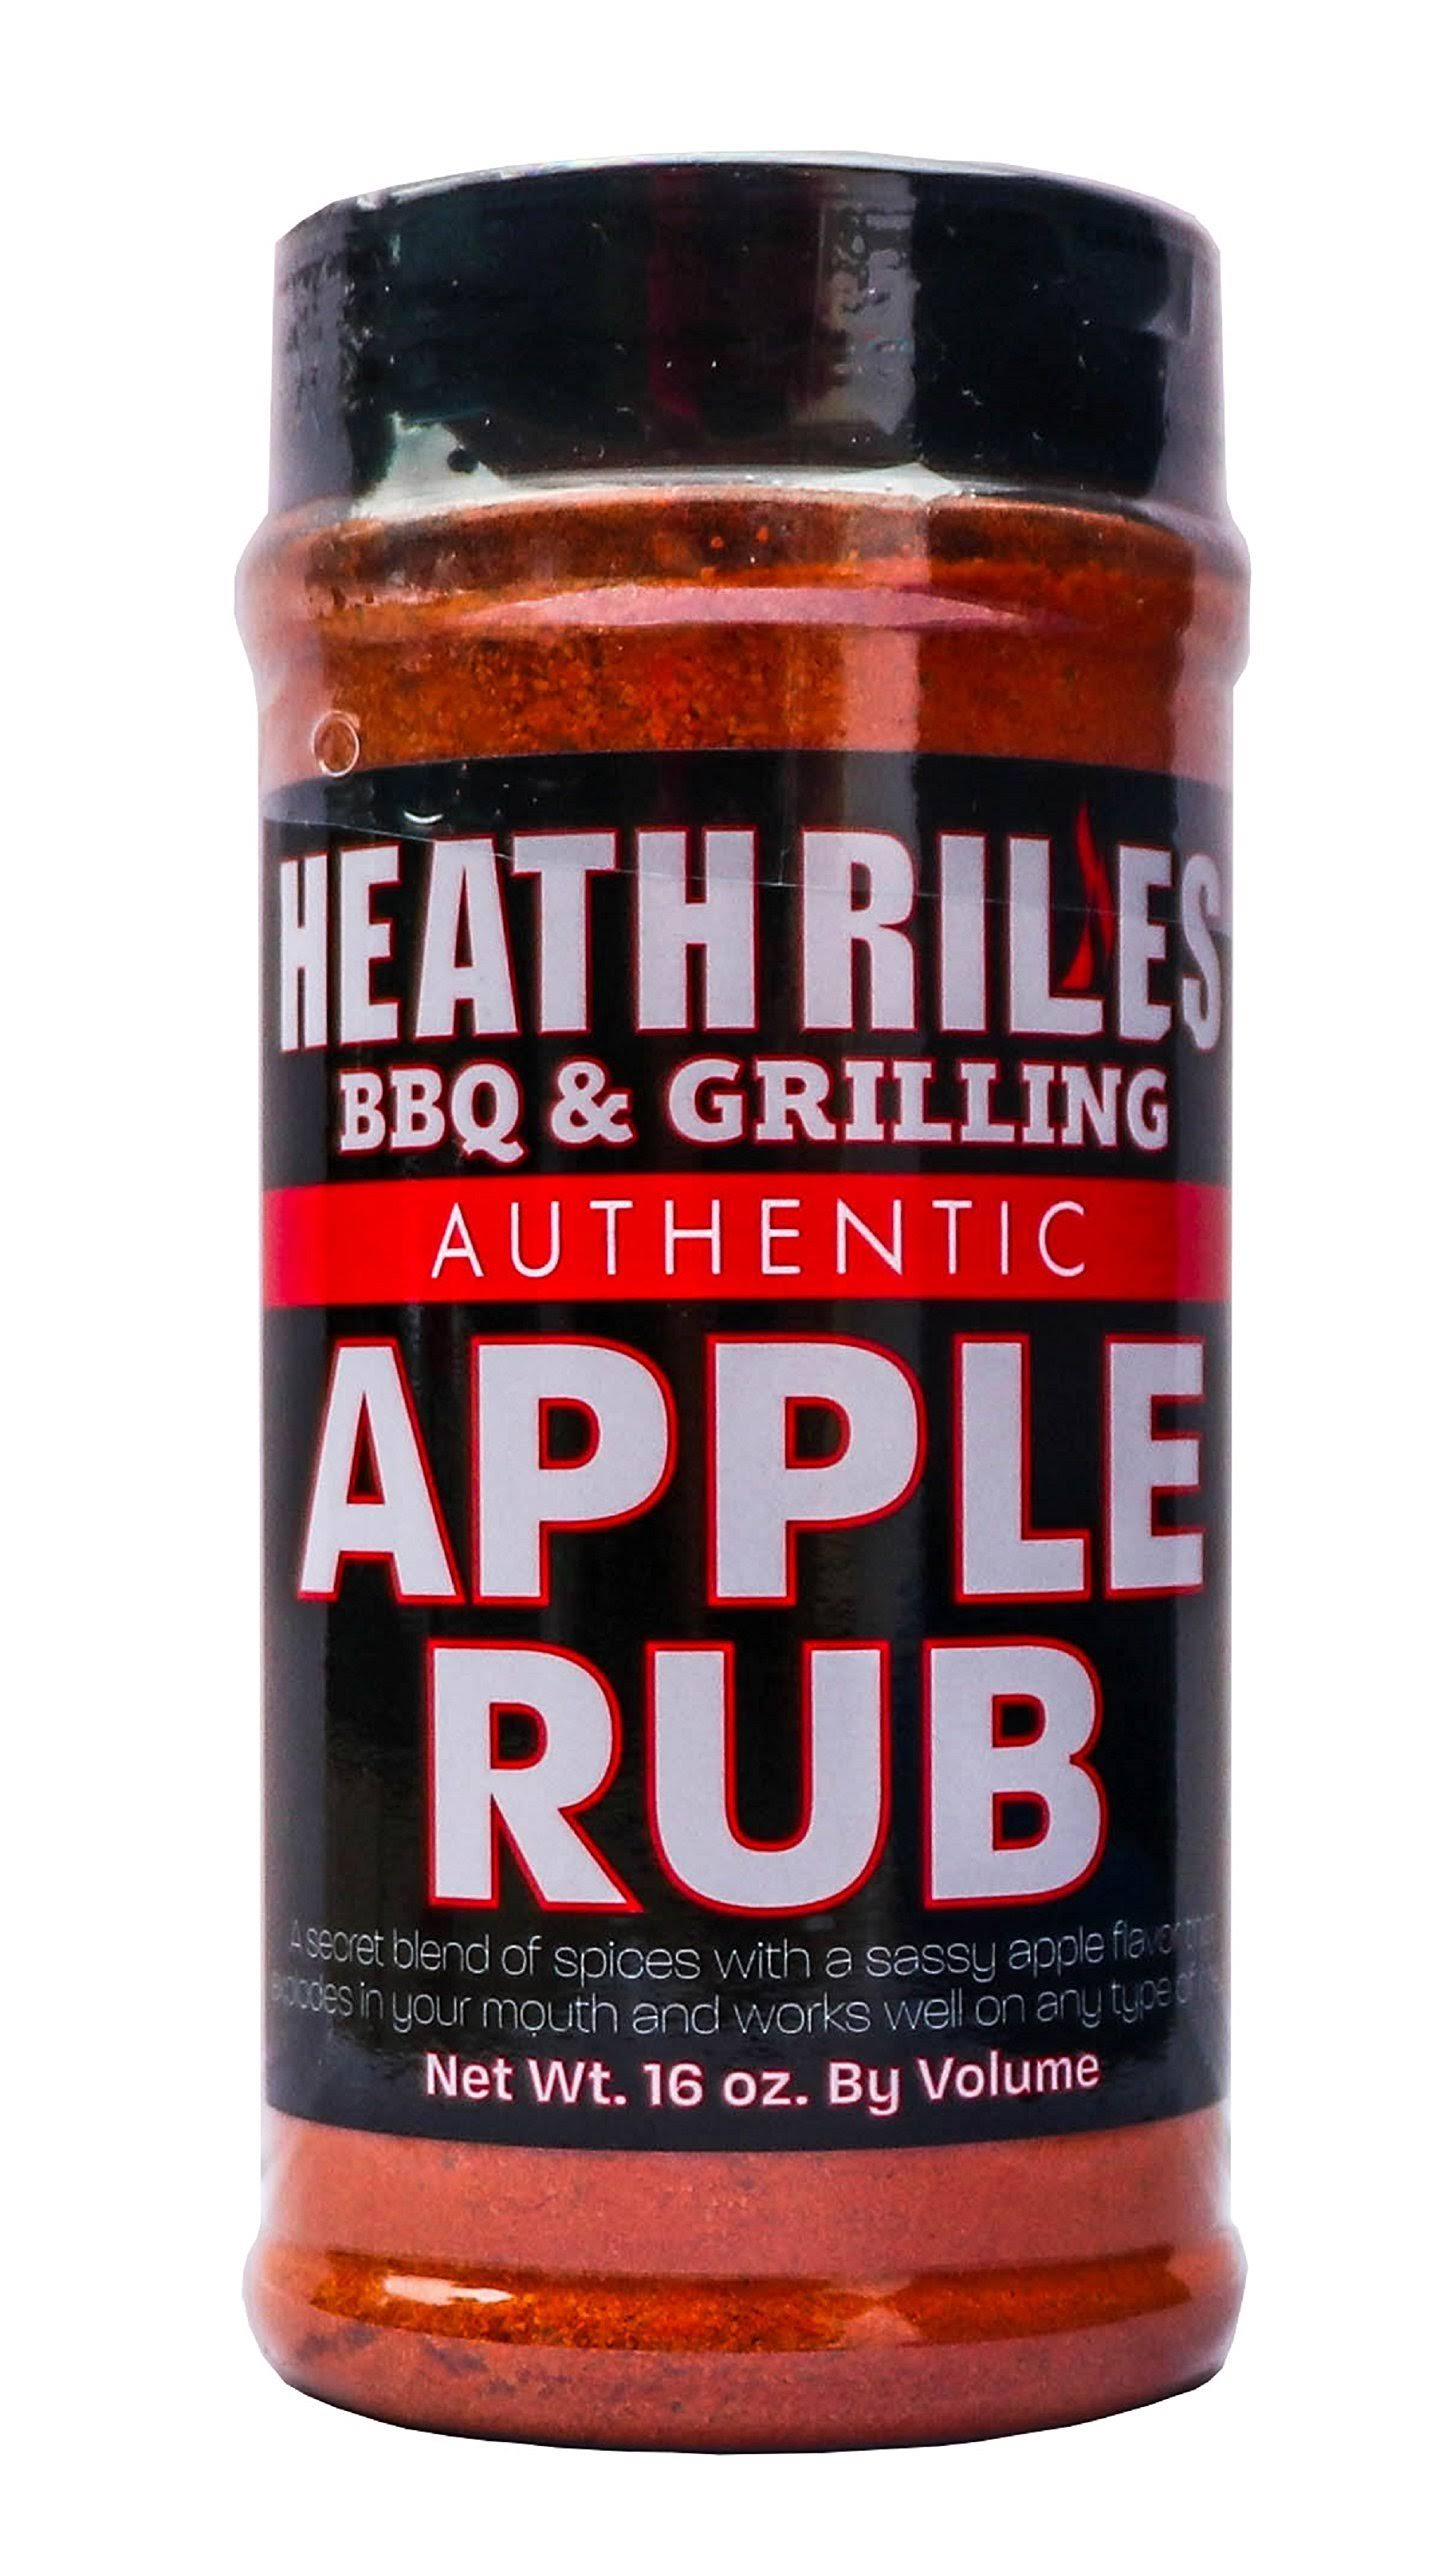 Heath Riles BBQ Apple Rub Apple